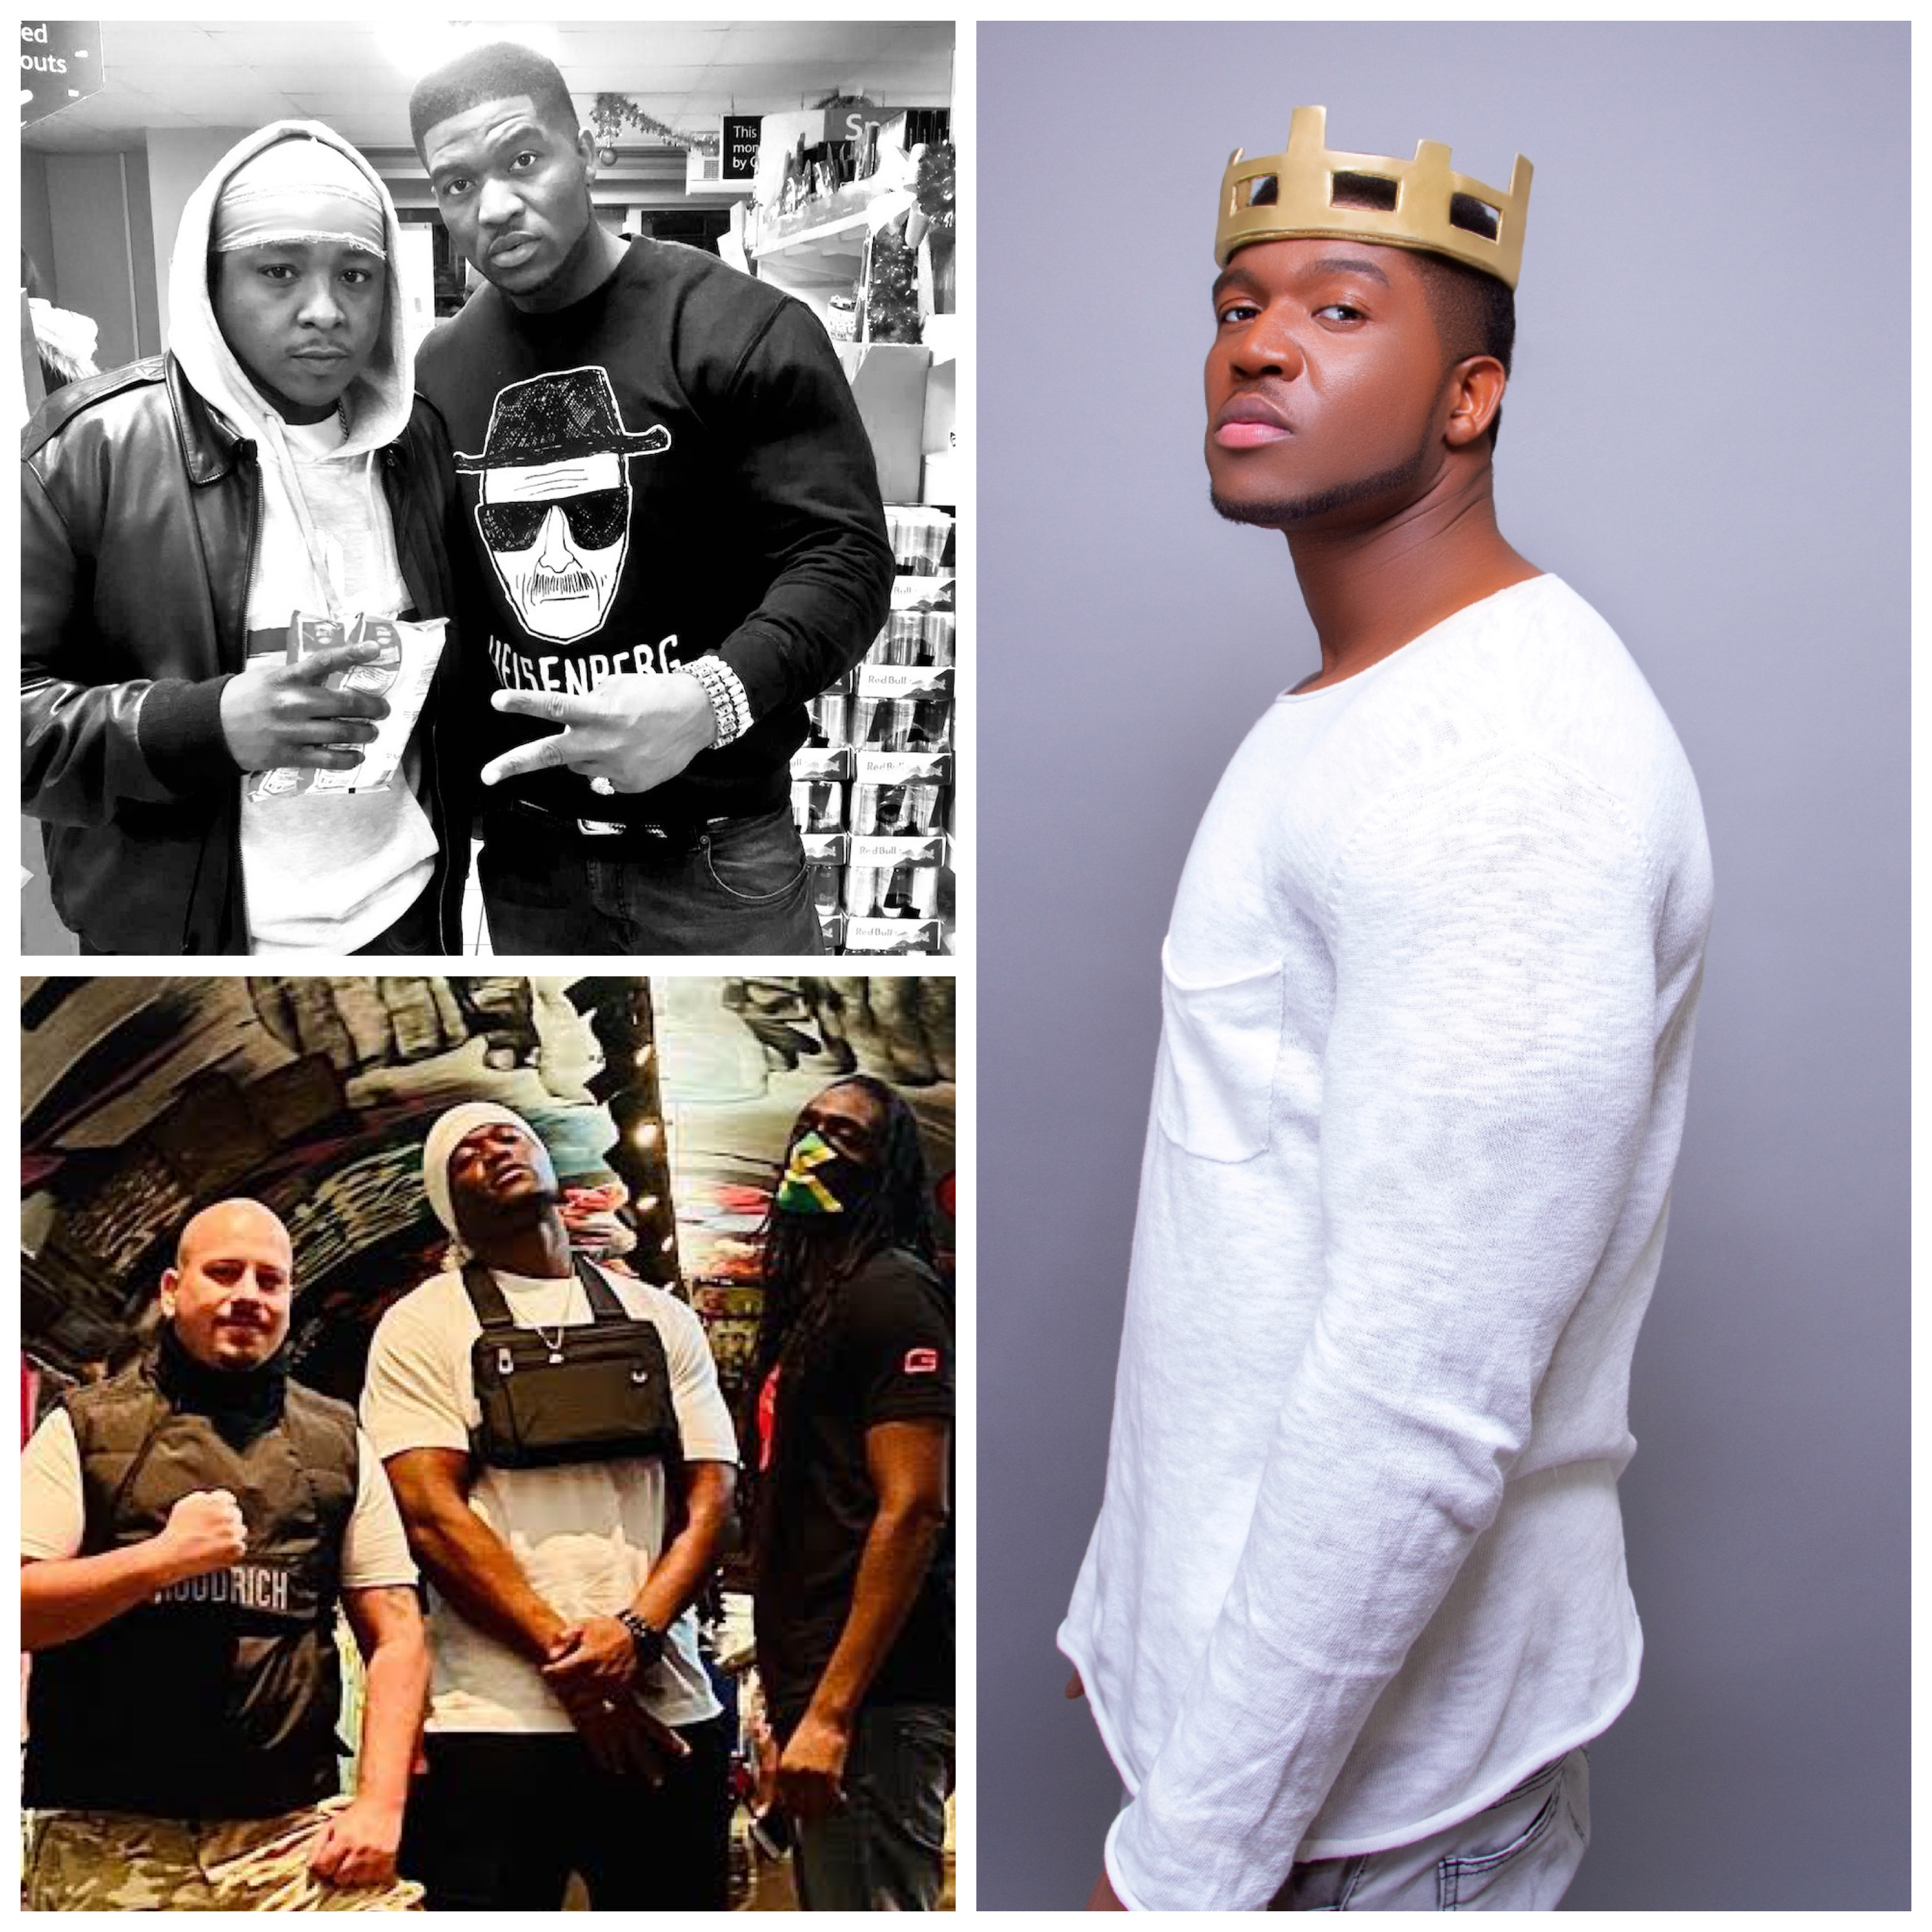 """KING DAVID THE GREAT"", NIGERIA'S NATIONAL ASSETS; Introduces Slovakian Rapper ""KAIDZAS"" into the African Music Scene."